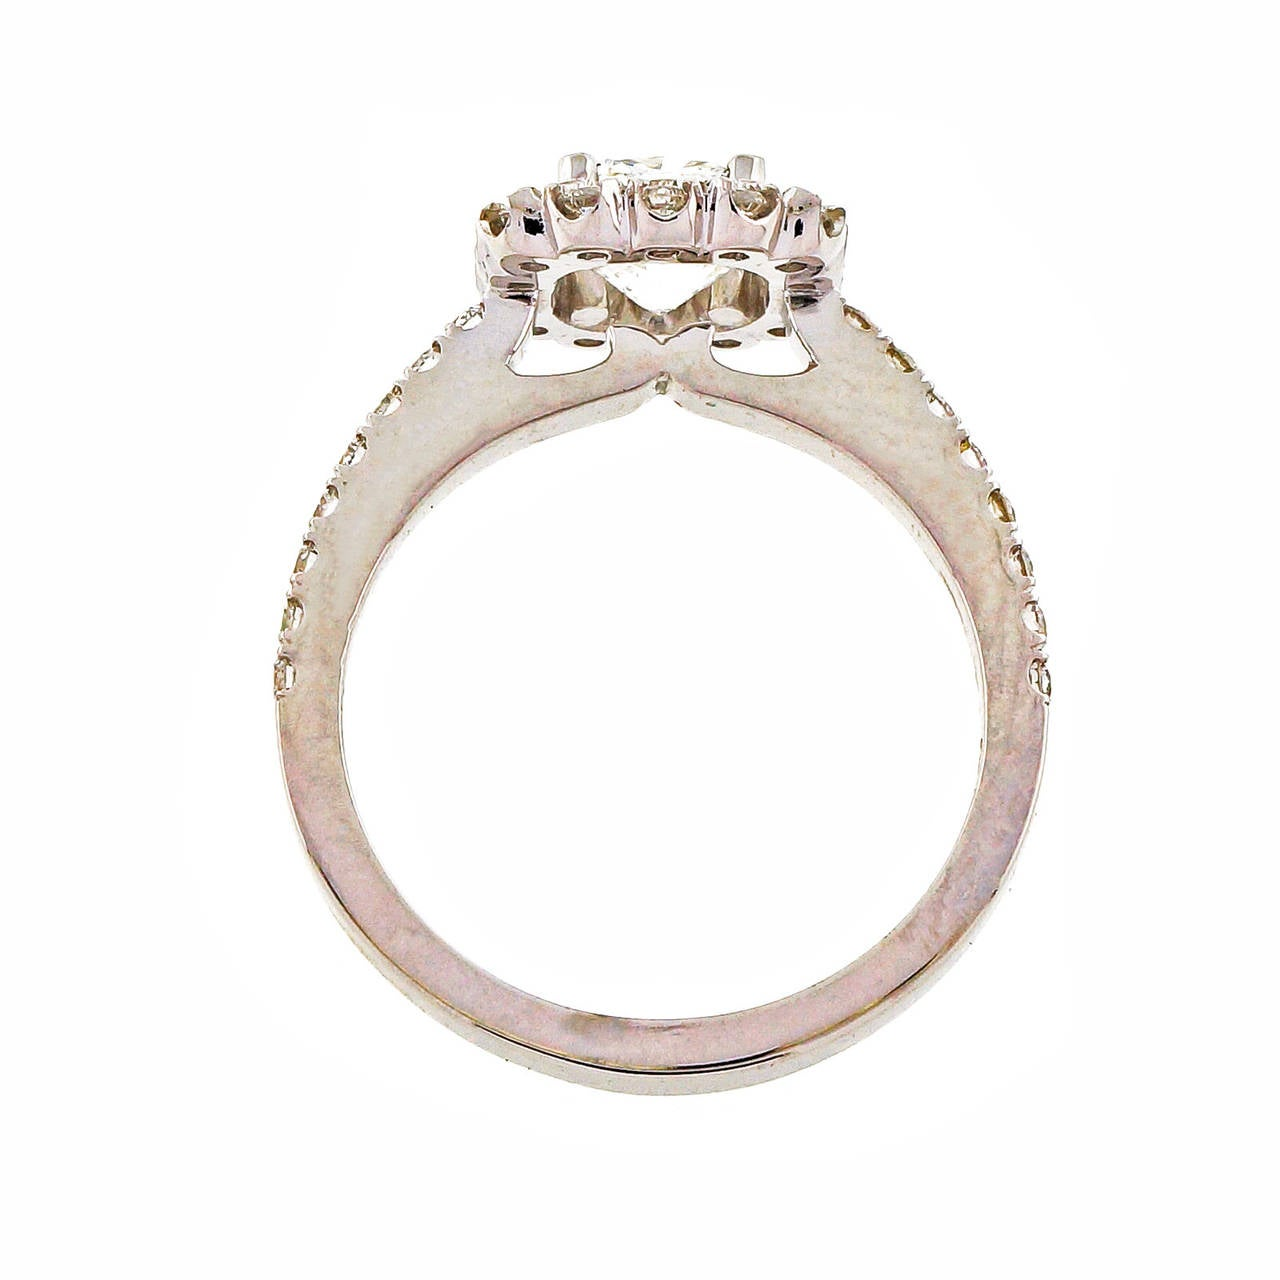 Peter Suchy Square Cushion Cut Diamond Platinum Halo Ring For Sale at 1stdibs